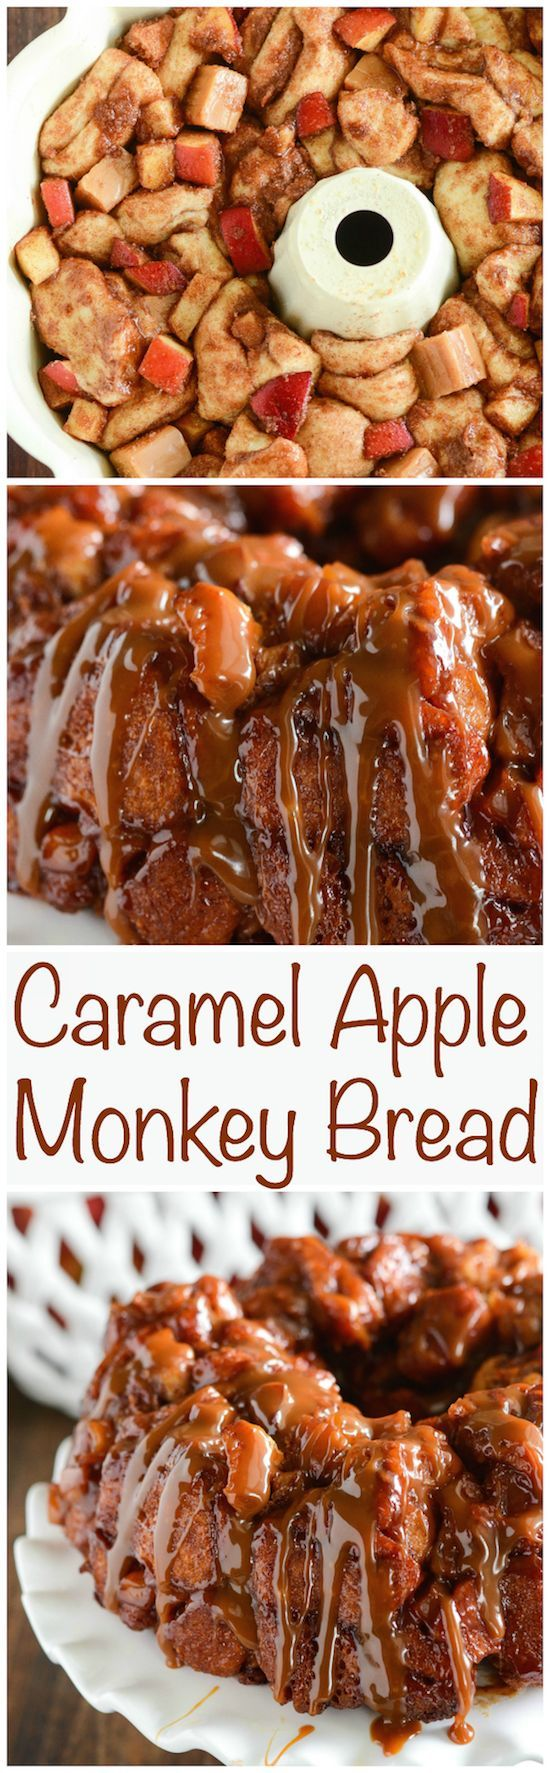 Caramel Apple Monkey Bread - only 6 ingredients! Caramel, fresh #snapdragon apple bites and lots of gooey sweet cinnamon roll bites!